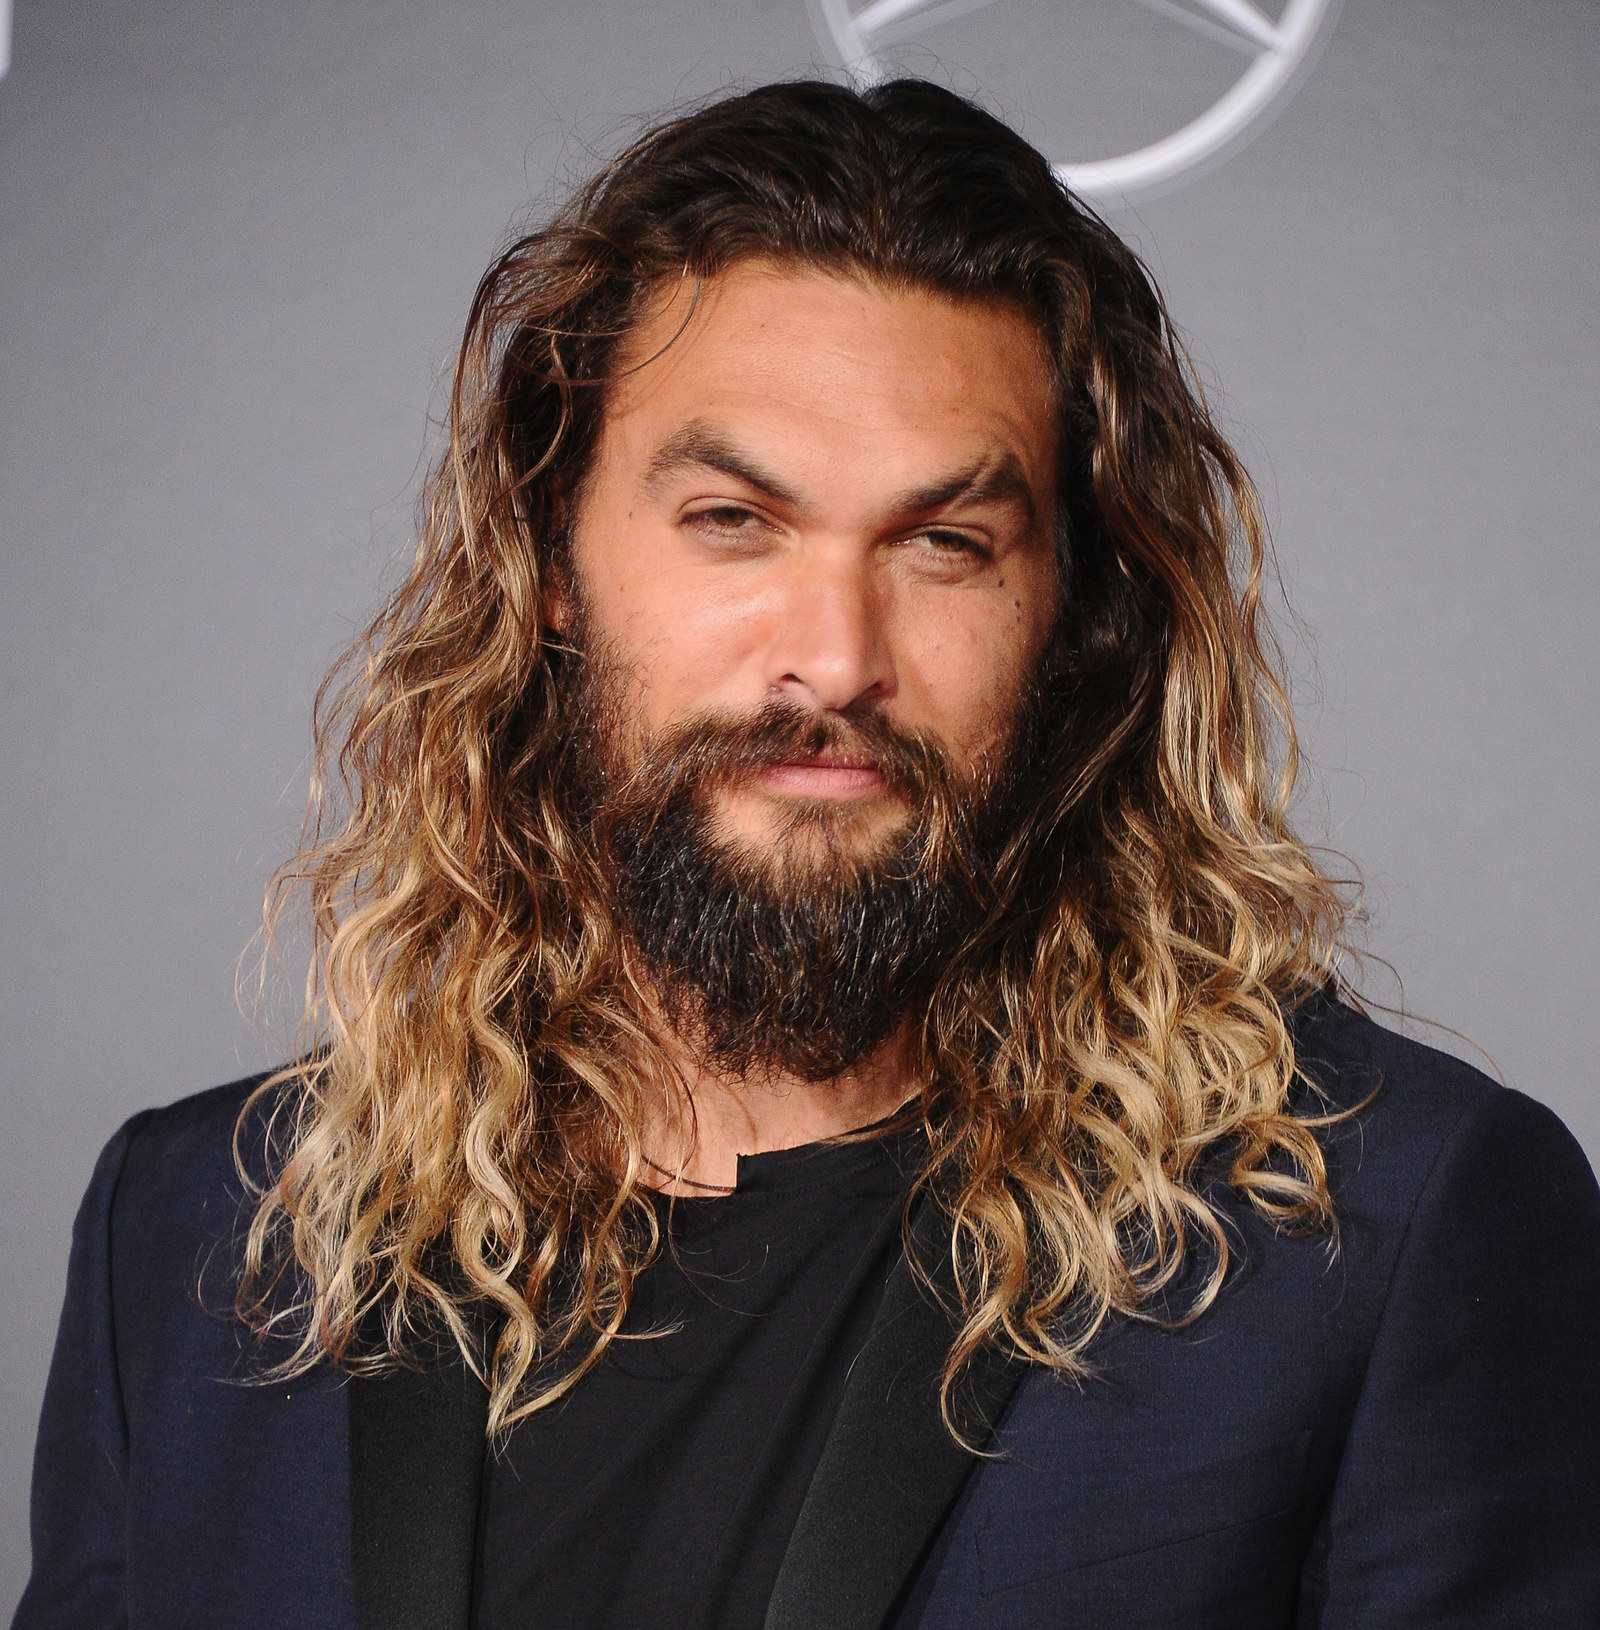 Jason Momoa Just Shaved Off His Beard And People Are Freaking Out